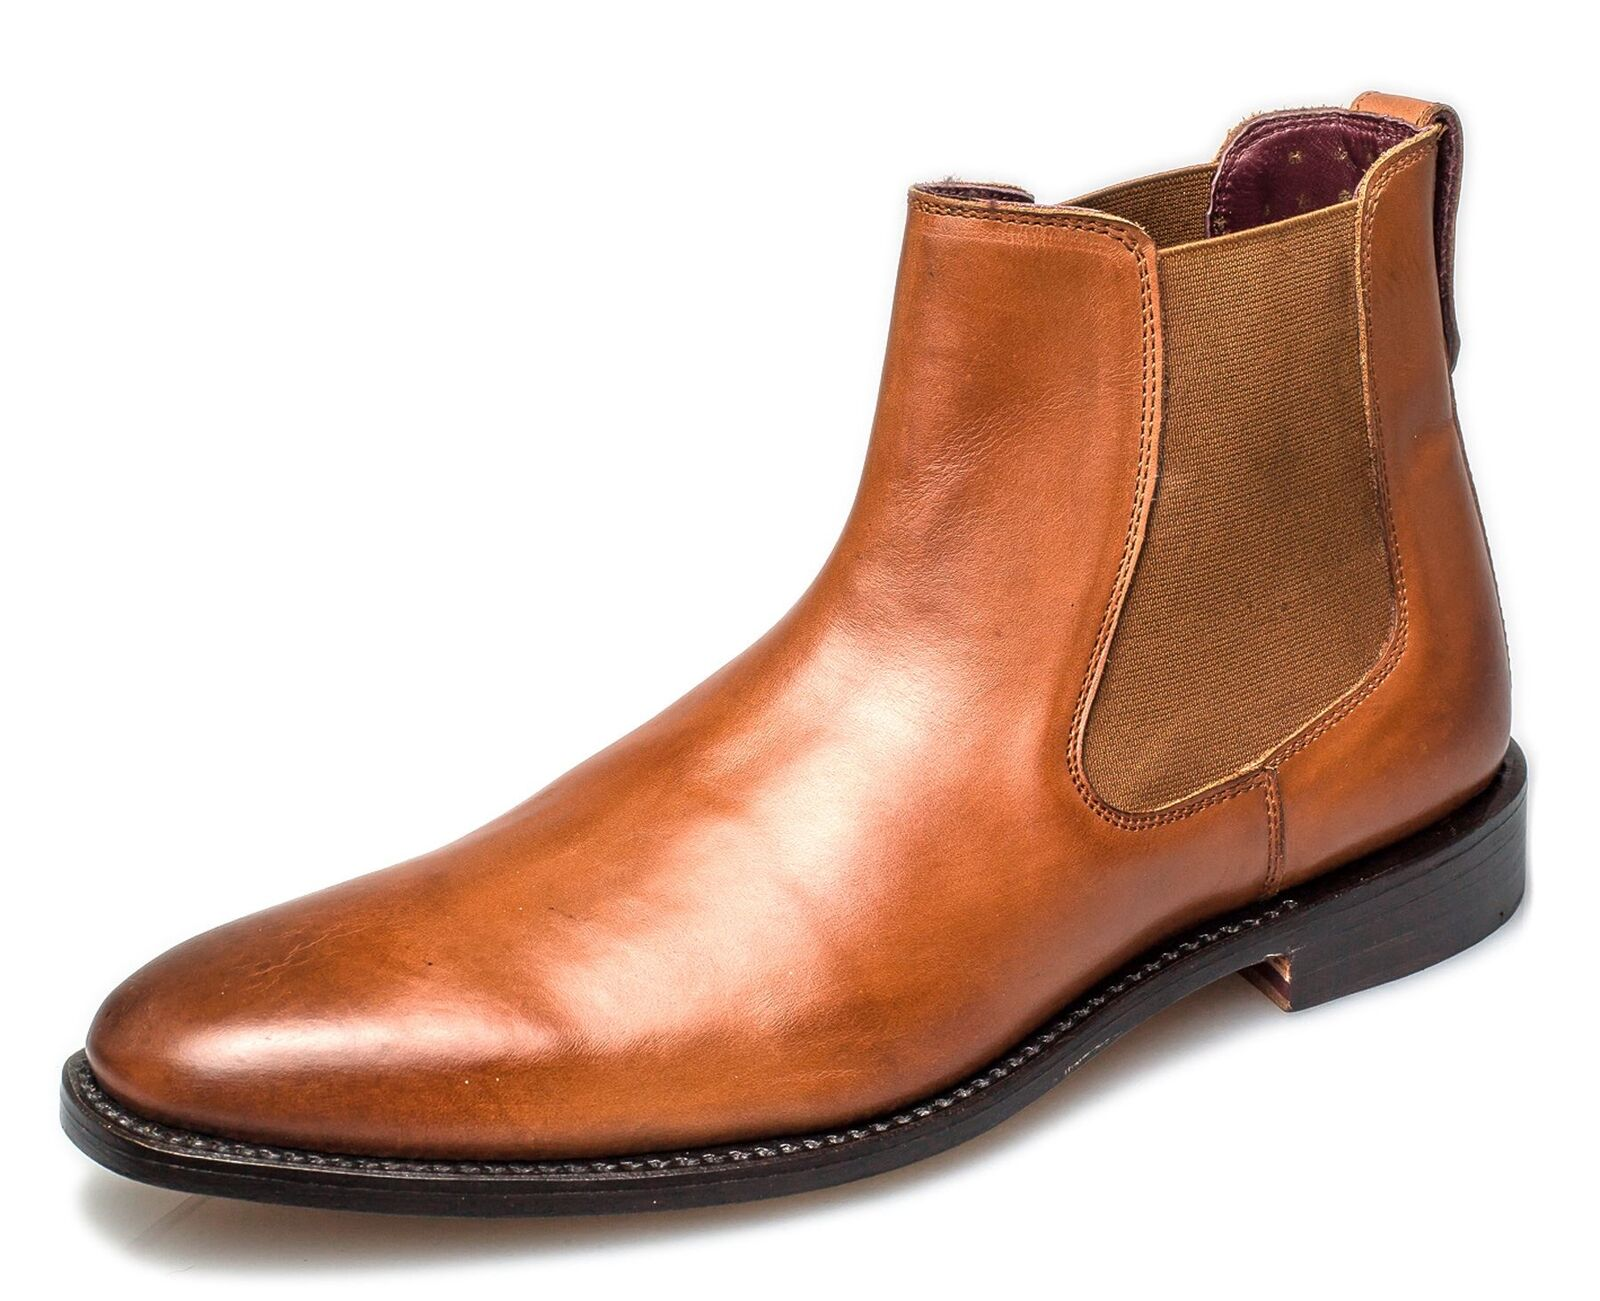 London Brogues Harvey Mens Leather Leather Leather Sole Chelsea Boots Tan a4d084